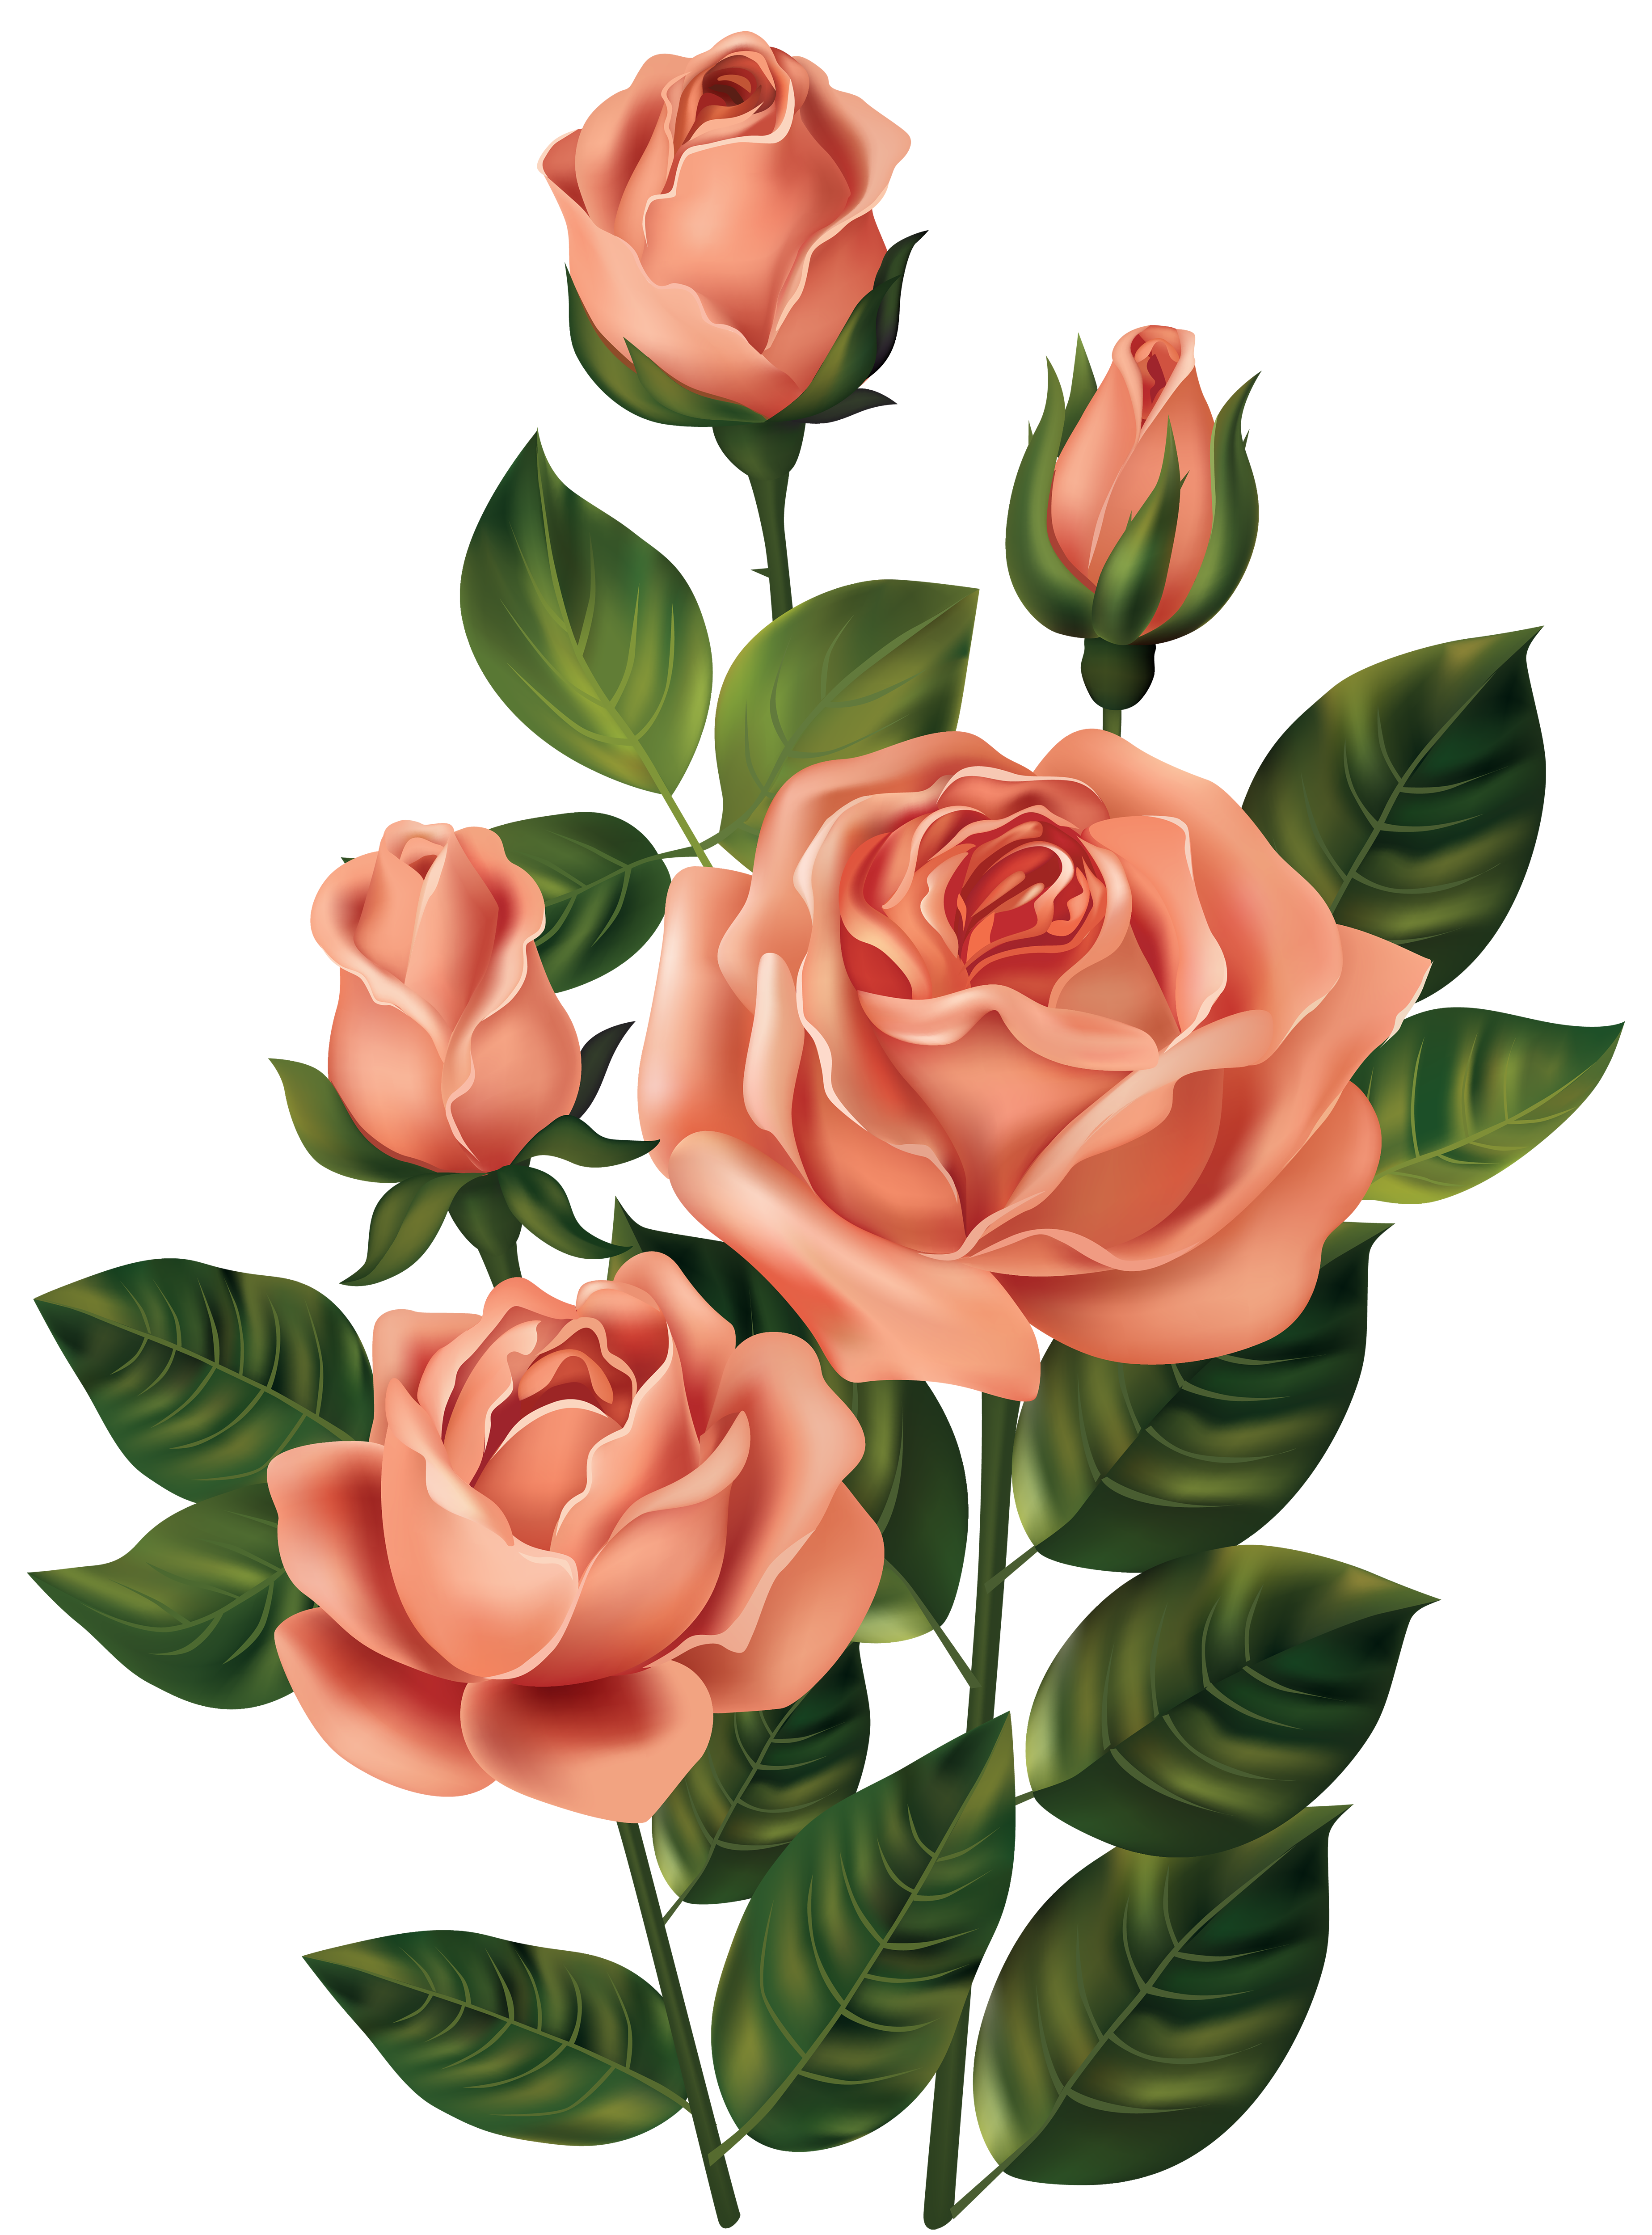 Rose cross clipart royalty free stock Roses_PNG_Clipart_Image-455354616.png (3696×5000) | розы | Pinterest ... royalty free stock